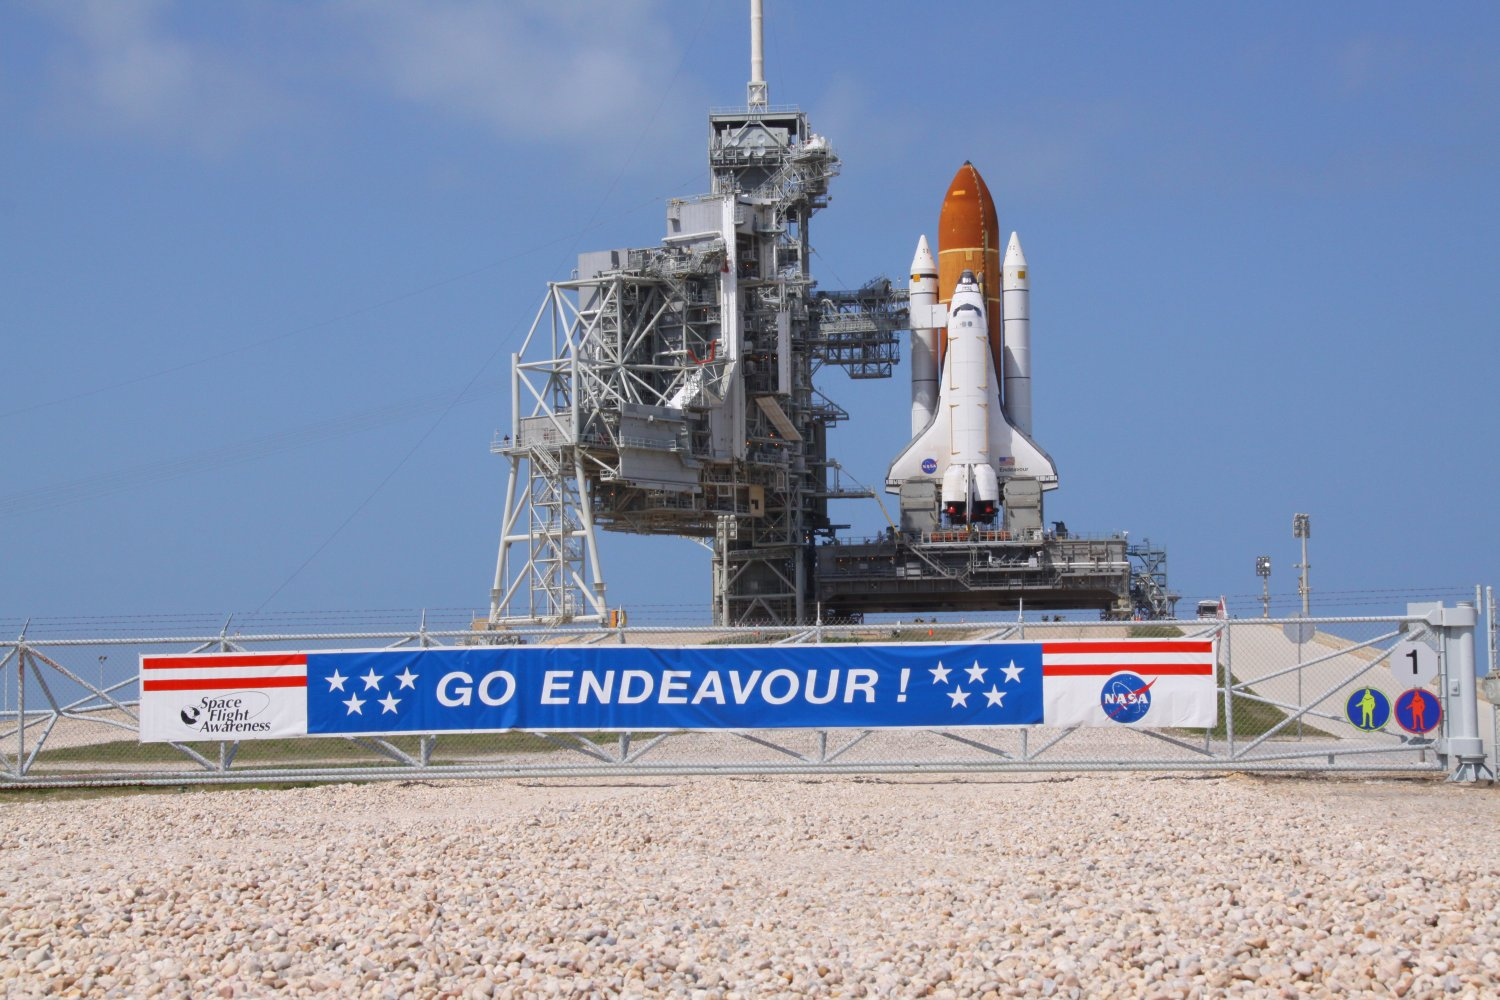 Endeavour-launchpad-small